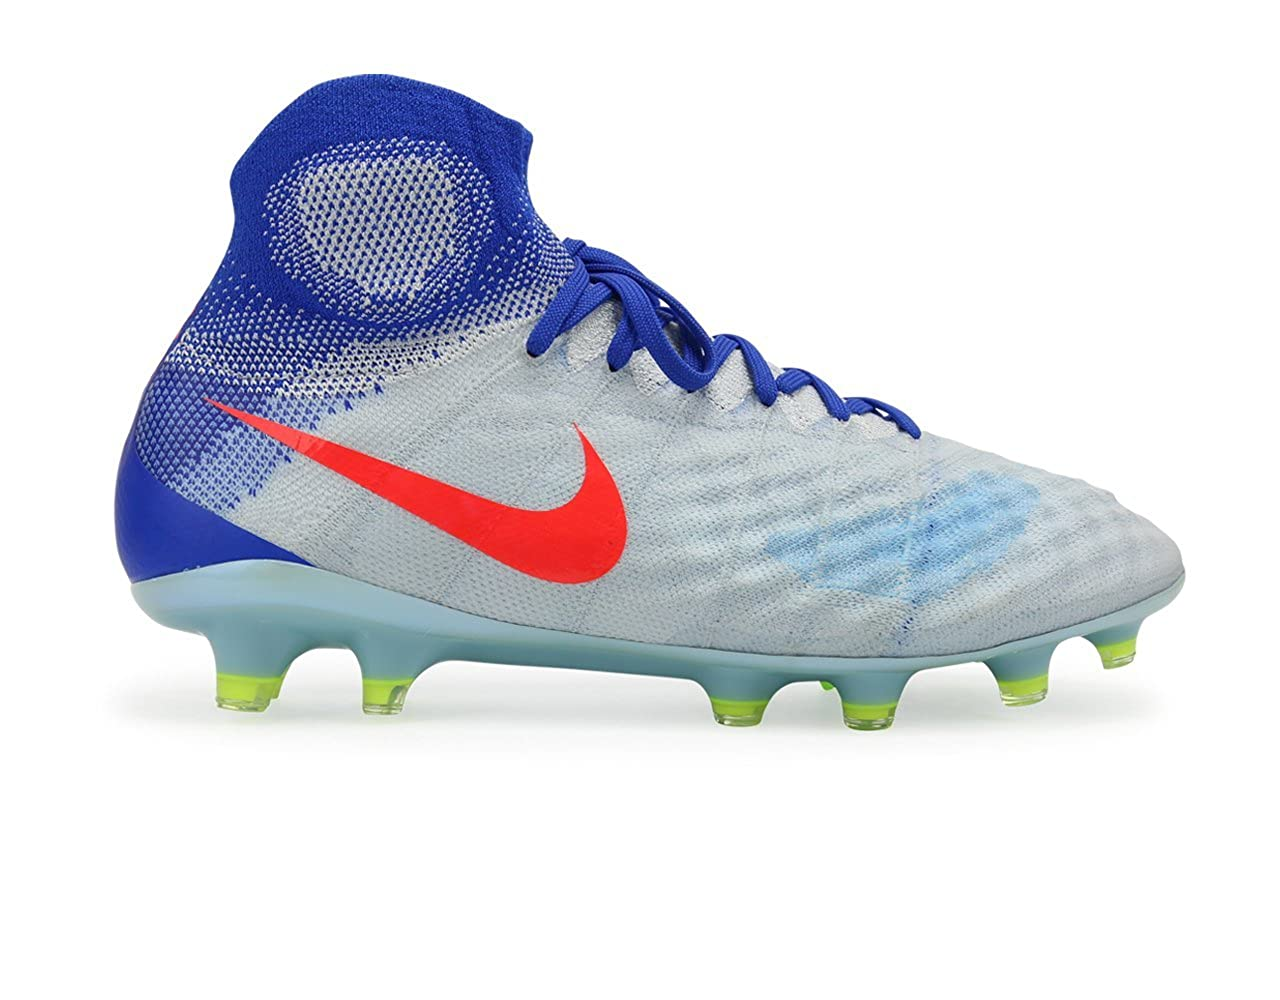 hot sale online e5cad c4440 Amazon.com | Nike Women's Magista Obra II FG White/Bright Crimson/Racer  Blue Soccer Shoes - 10A | Soccer